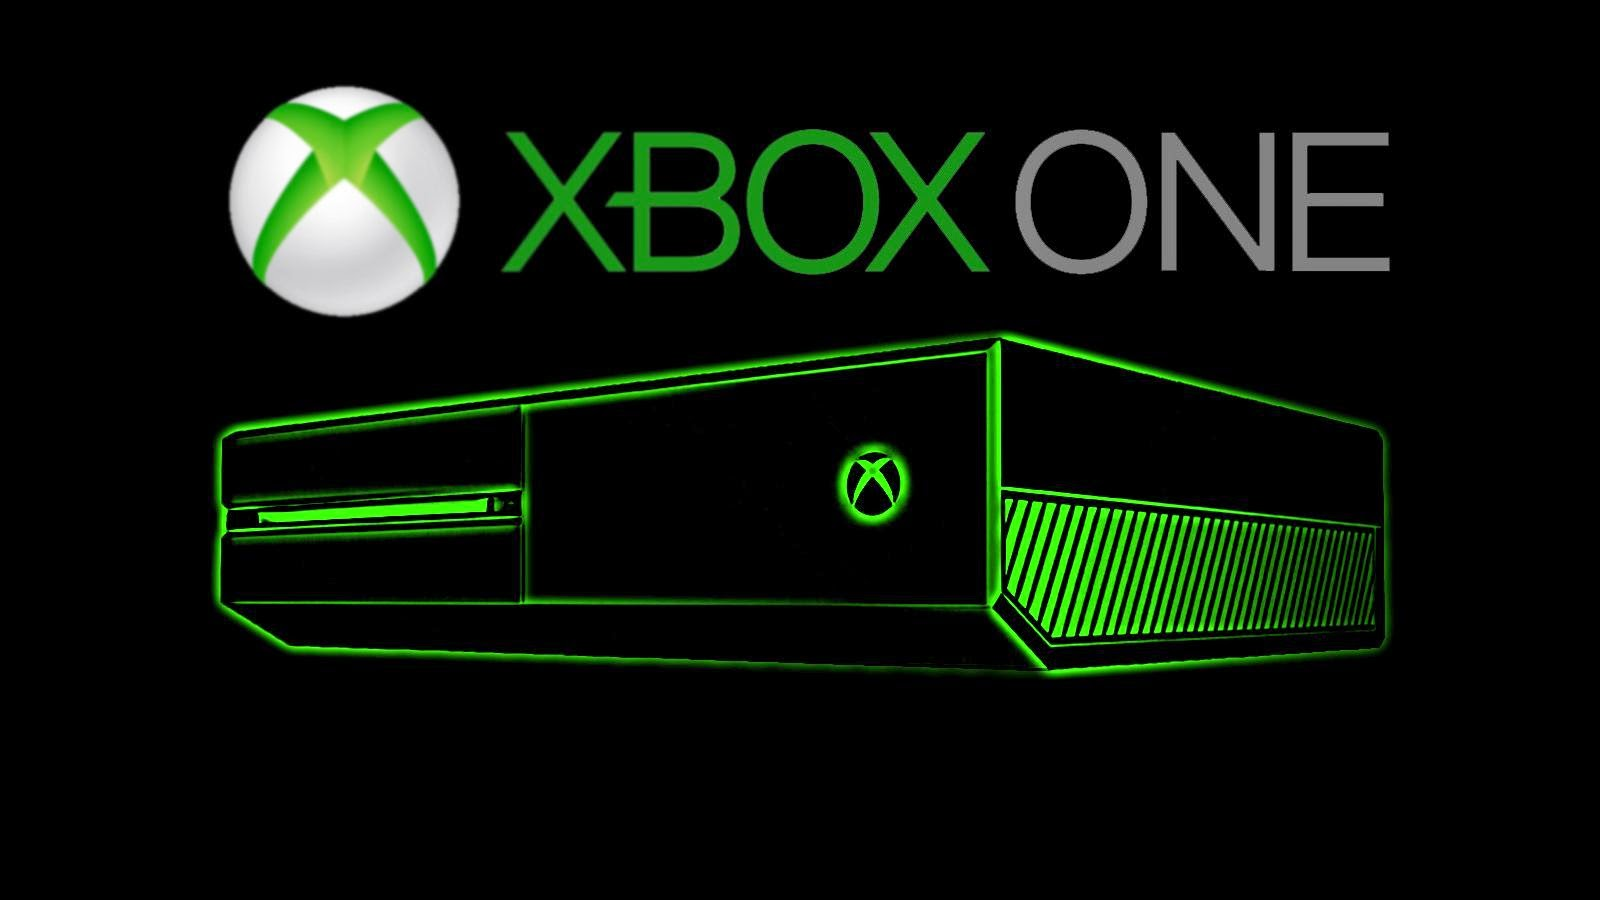 Xbox One Wallpapers HD | HD Wallpapers